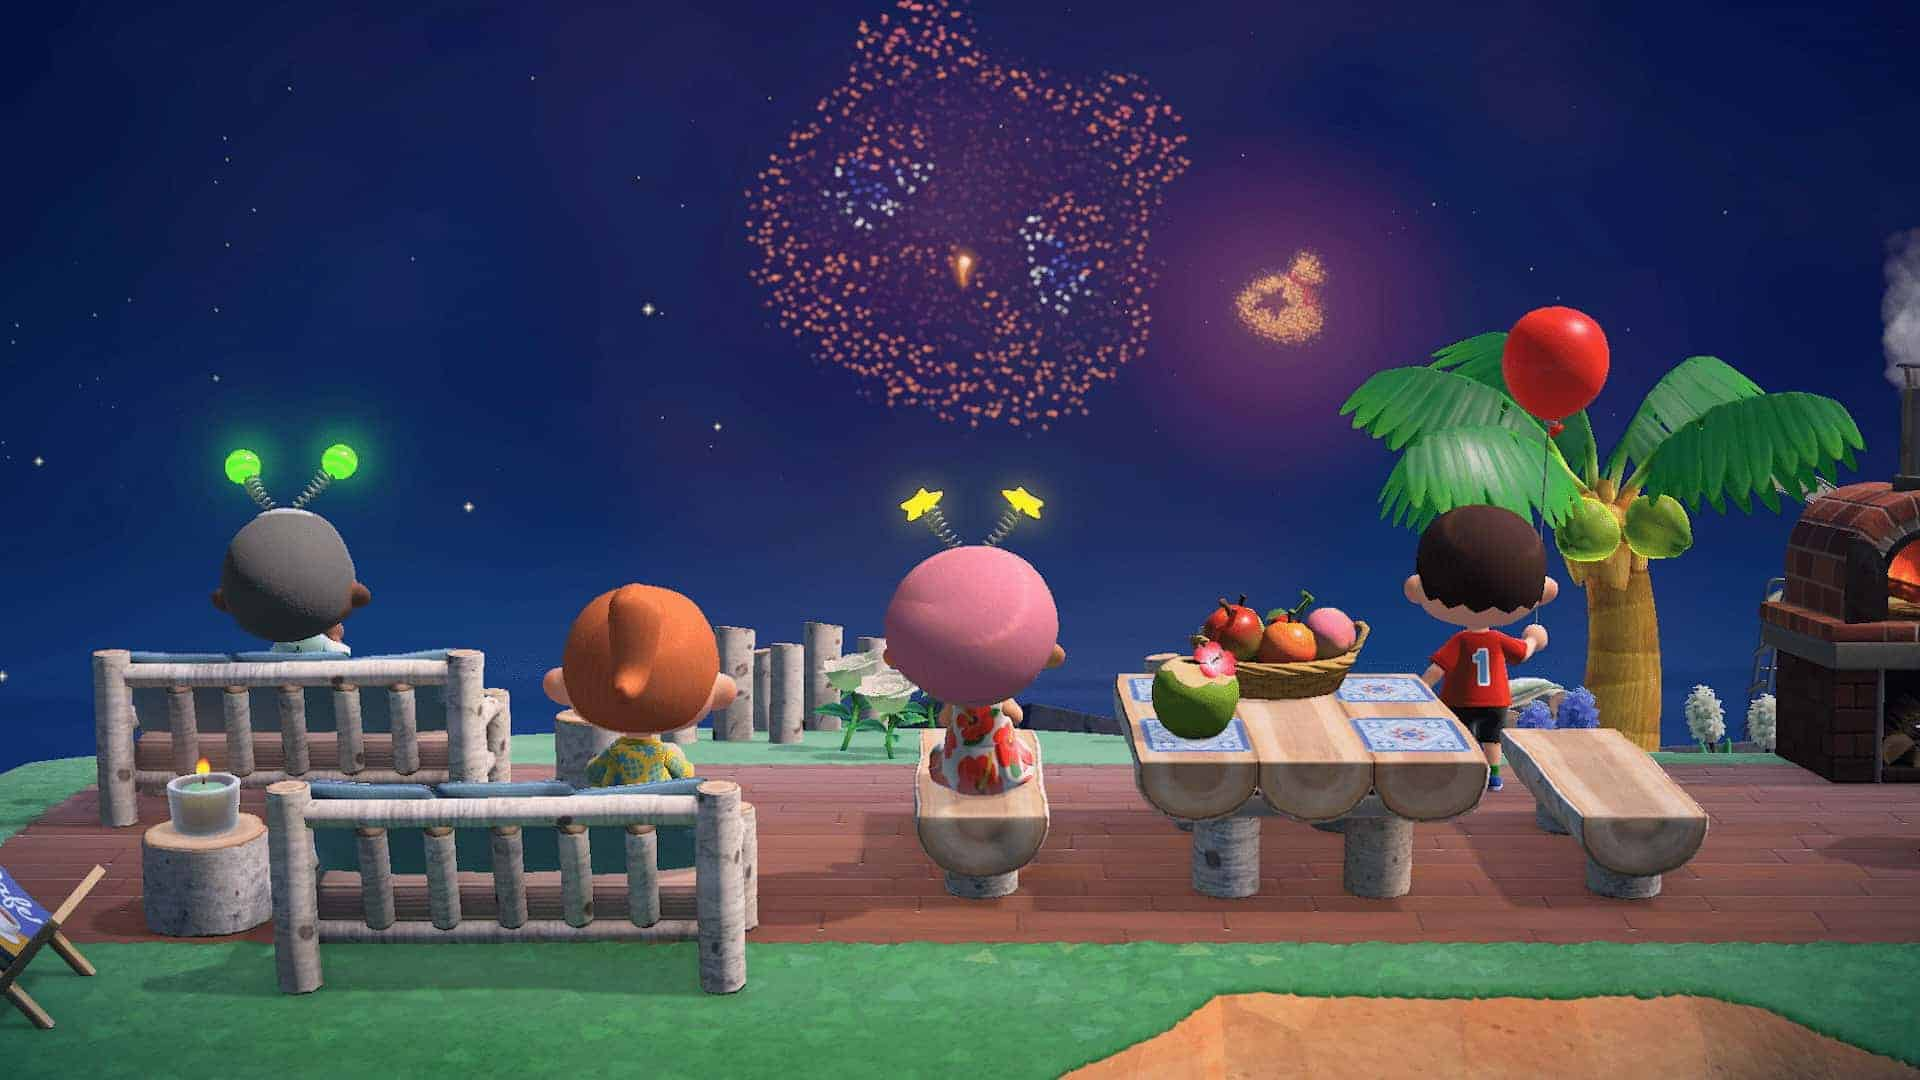 animal-crossing-new-horizons-summer-update-wave-two-screenshots-custom-design-pattern-fireworks-show